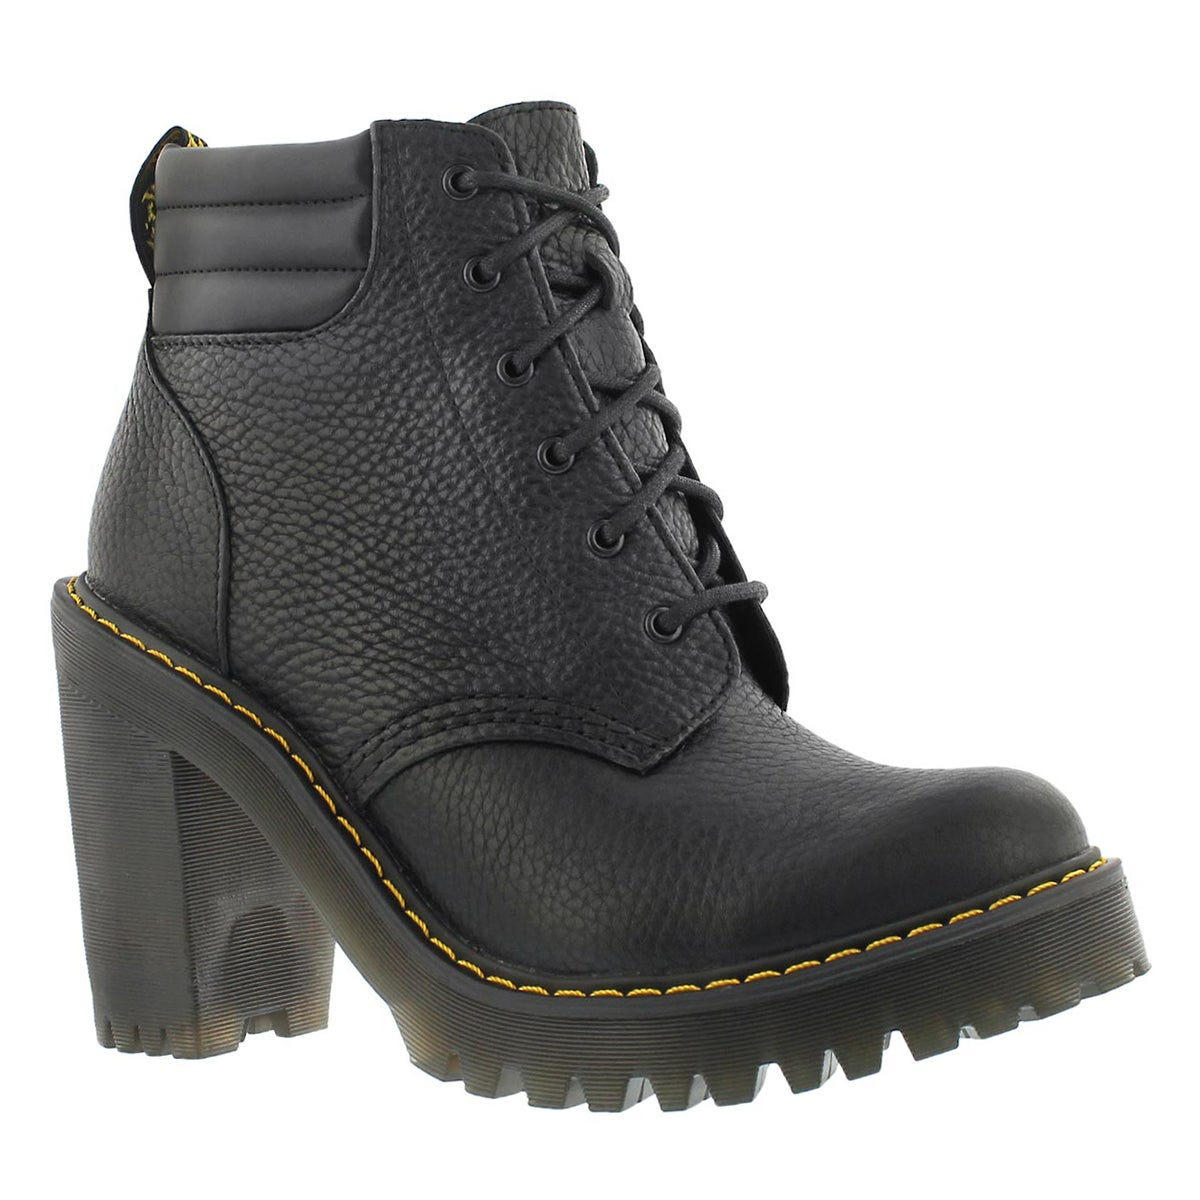 Women's PERSEPHONE black lace up booties